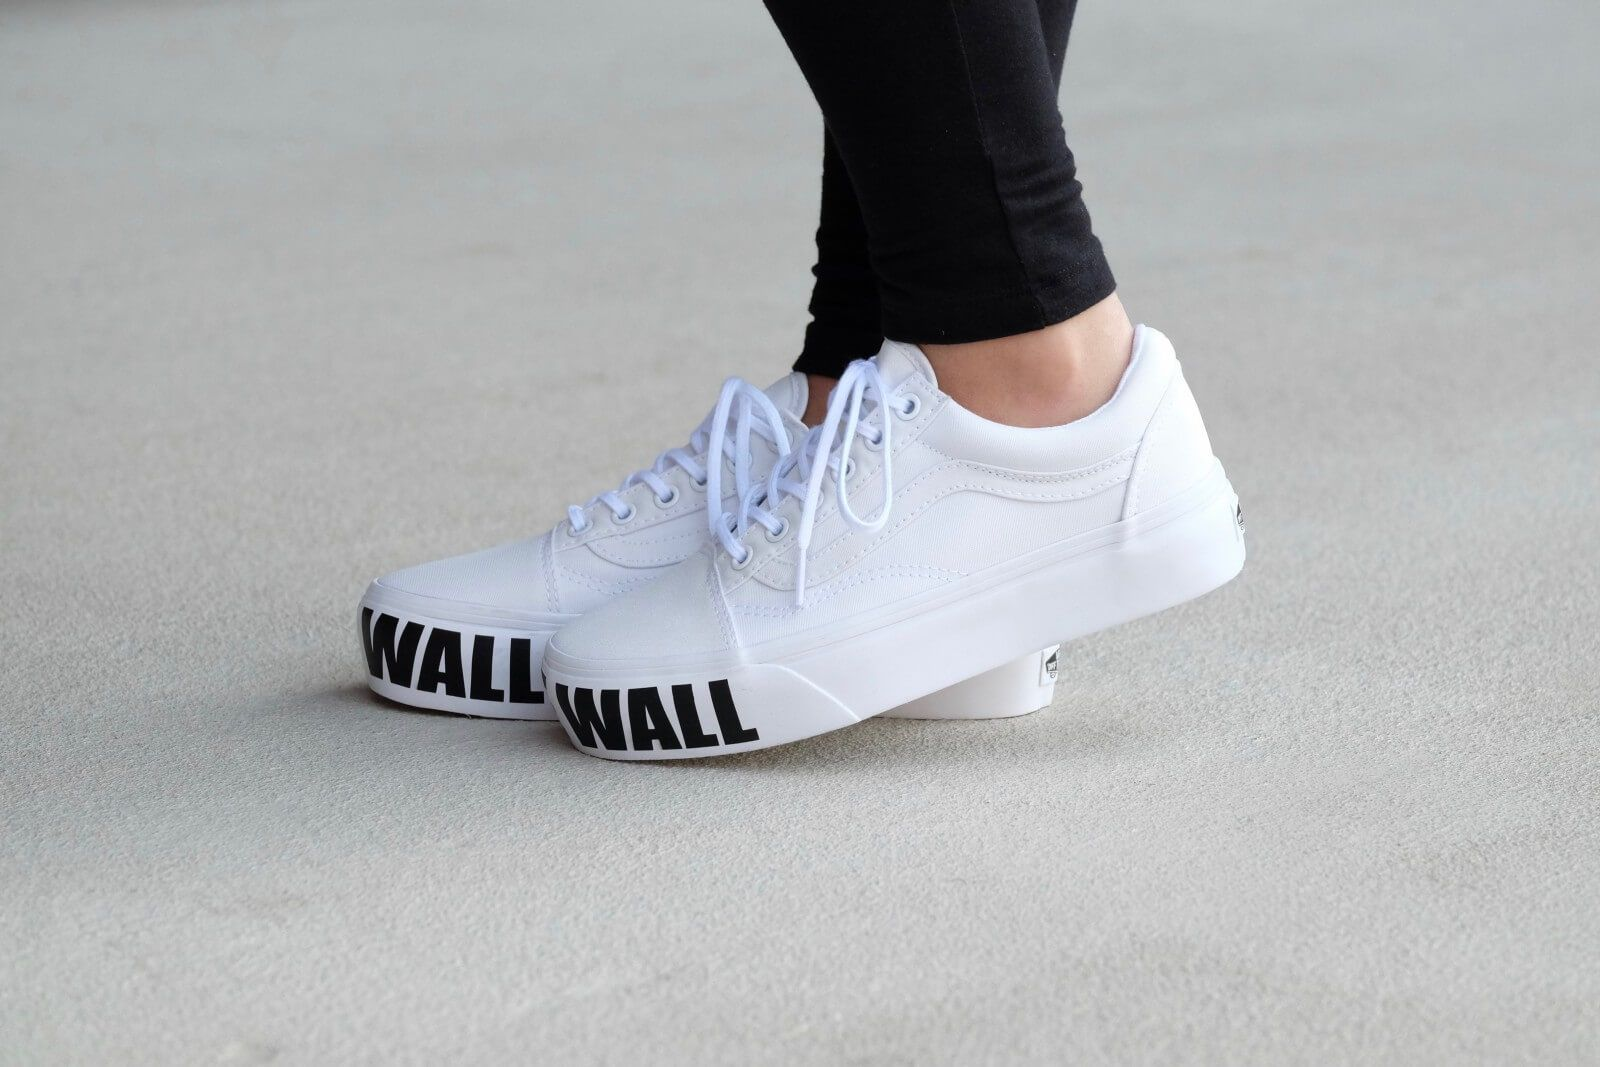 Vans Off The Wall white platform